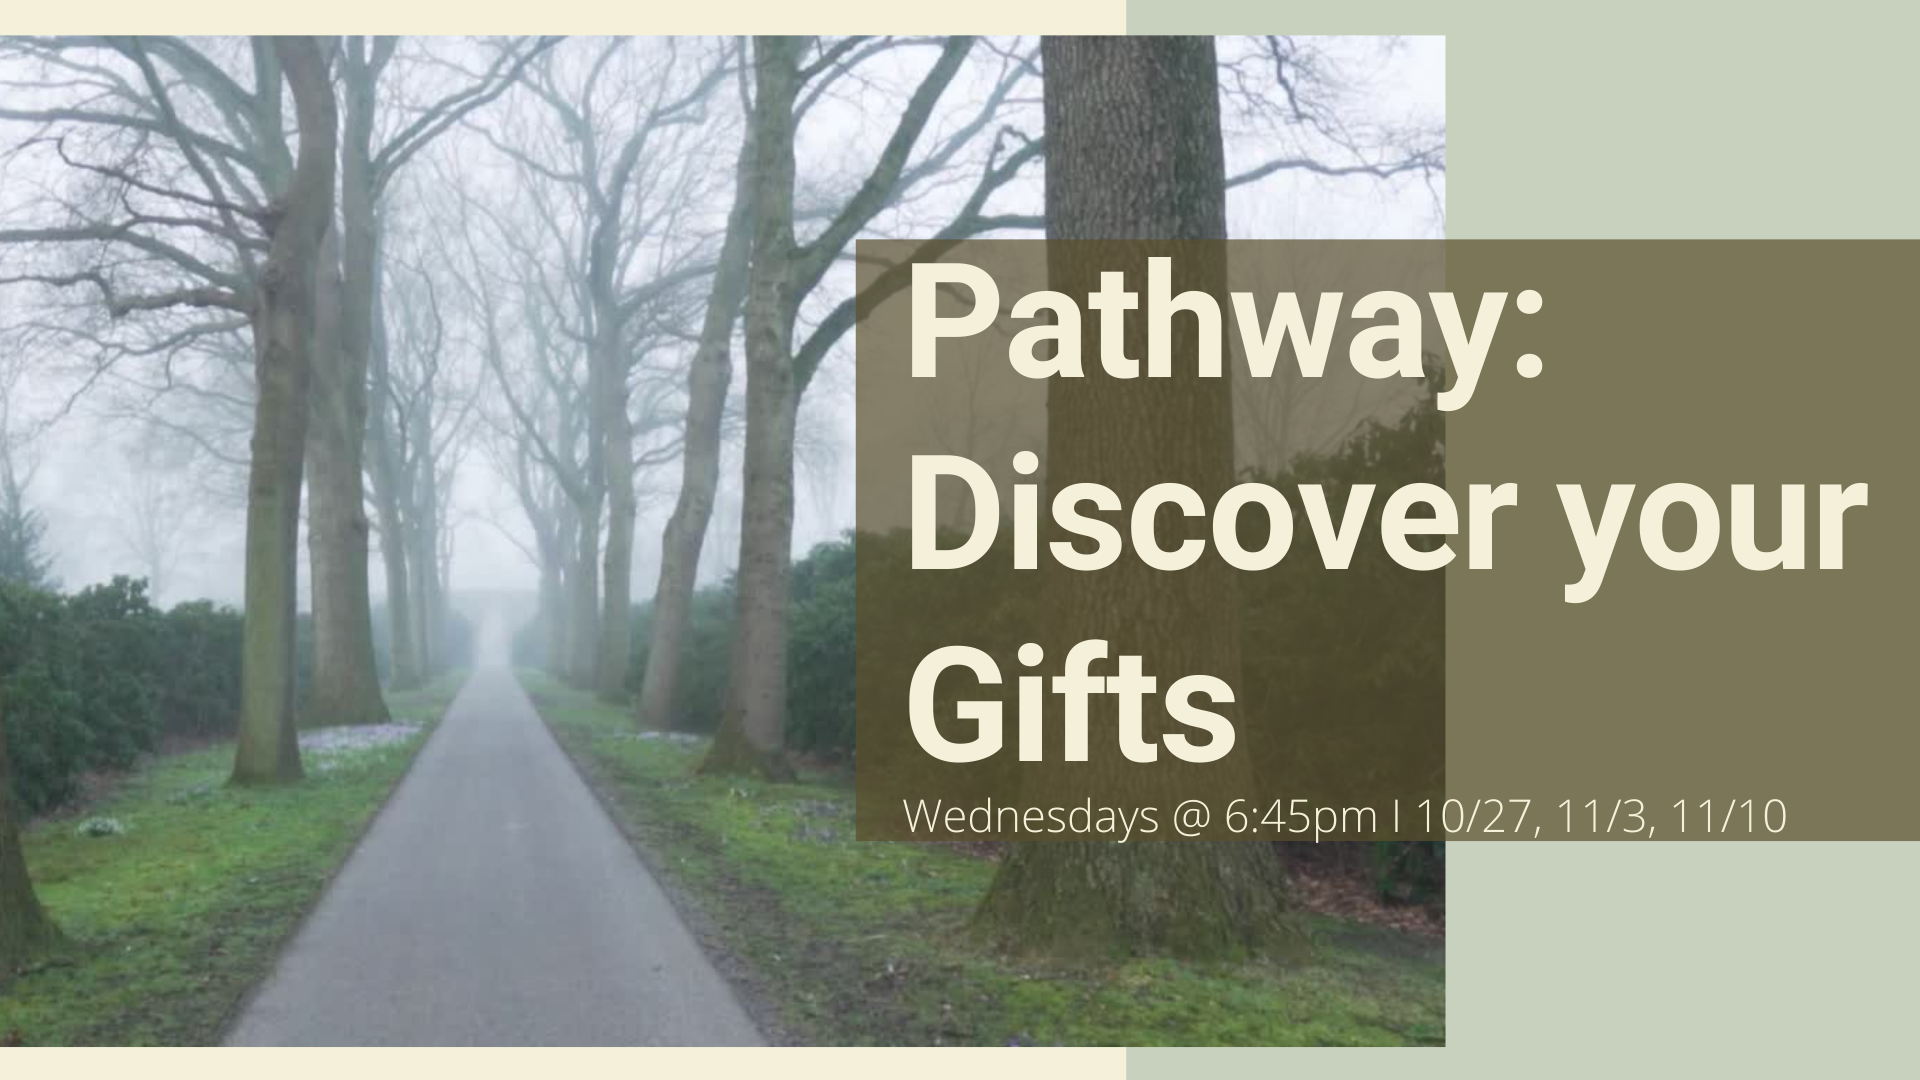 Pathway - Discover your Gifts graphic with details